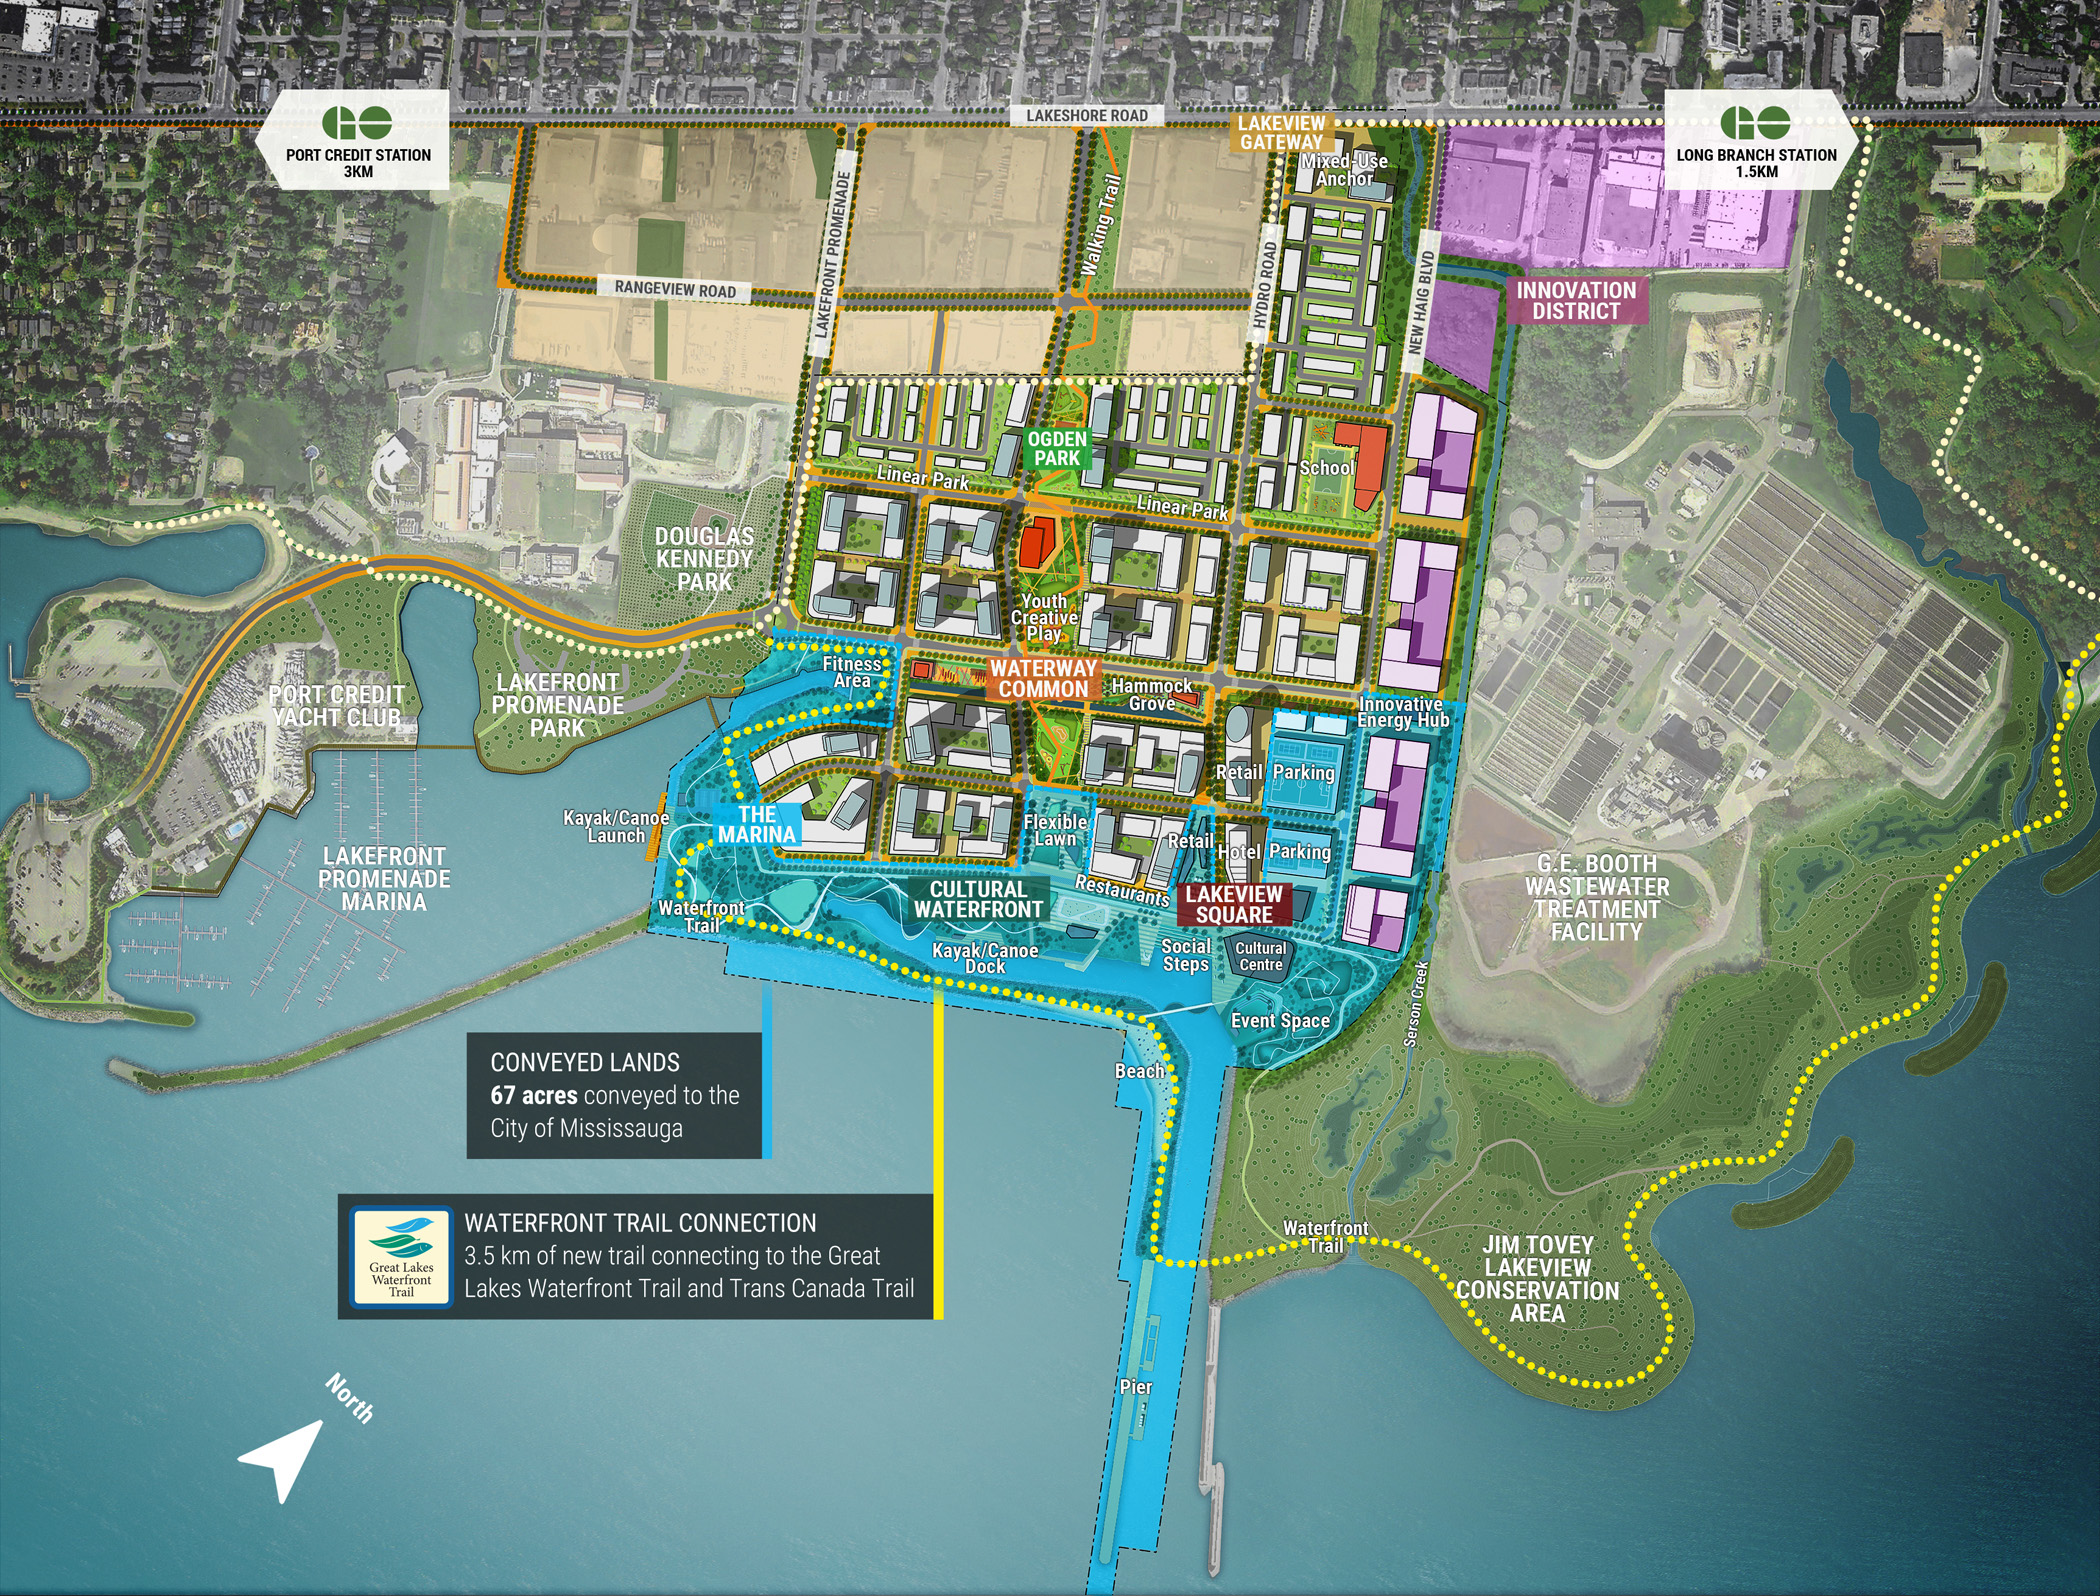 lakeview-village-condos-for-sale-mississauga-lakeside-site-plan-1